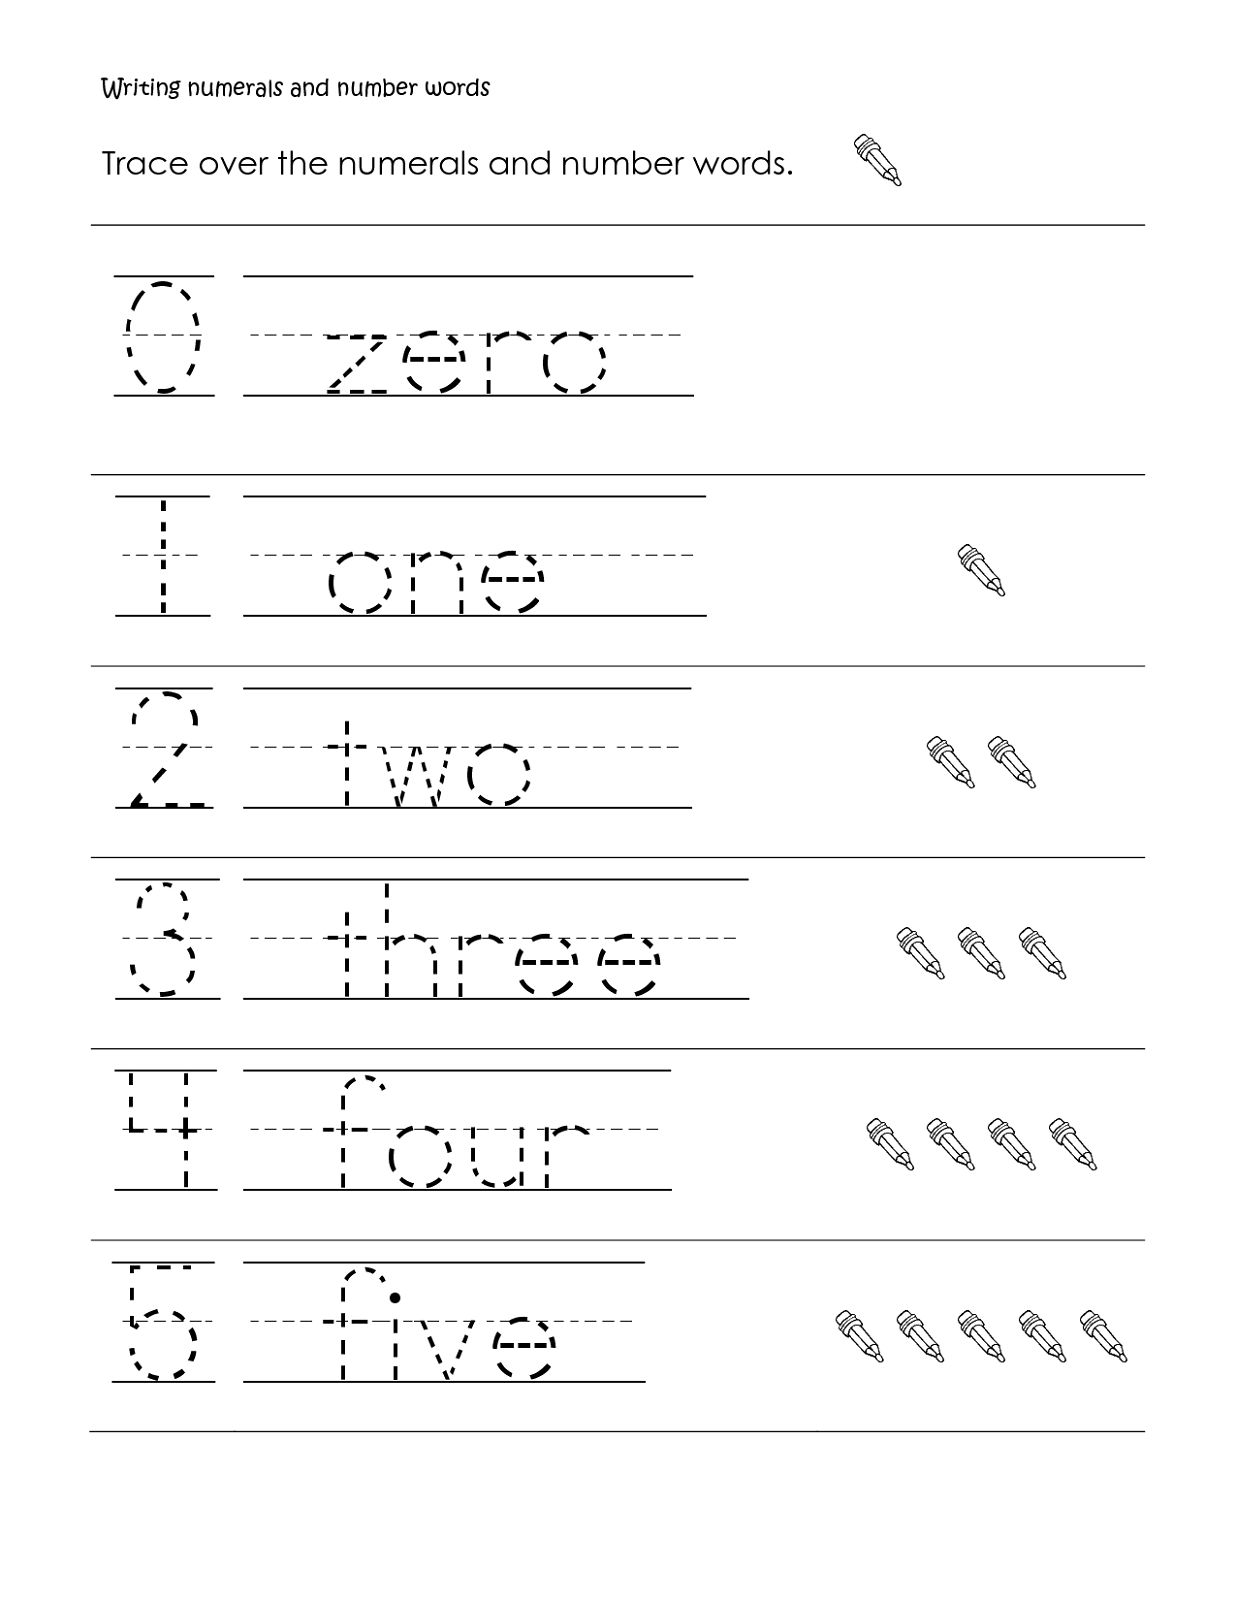 Printable Number Trace Worksheets | Activity Shelter